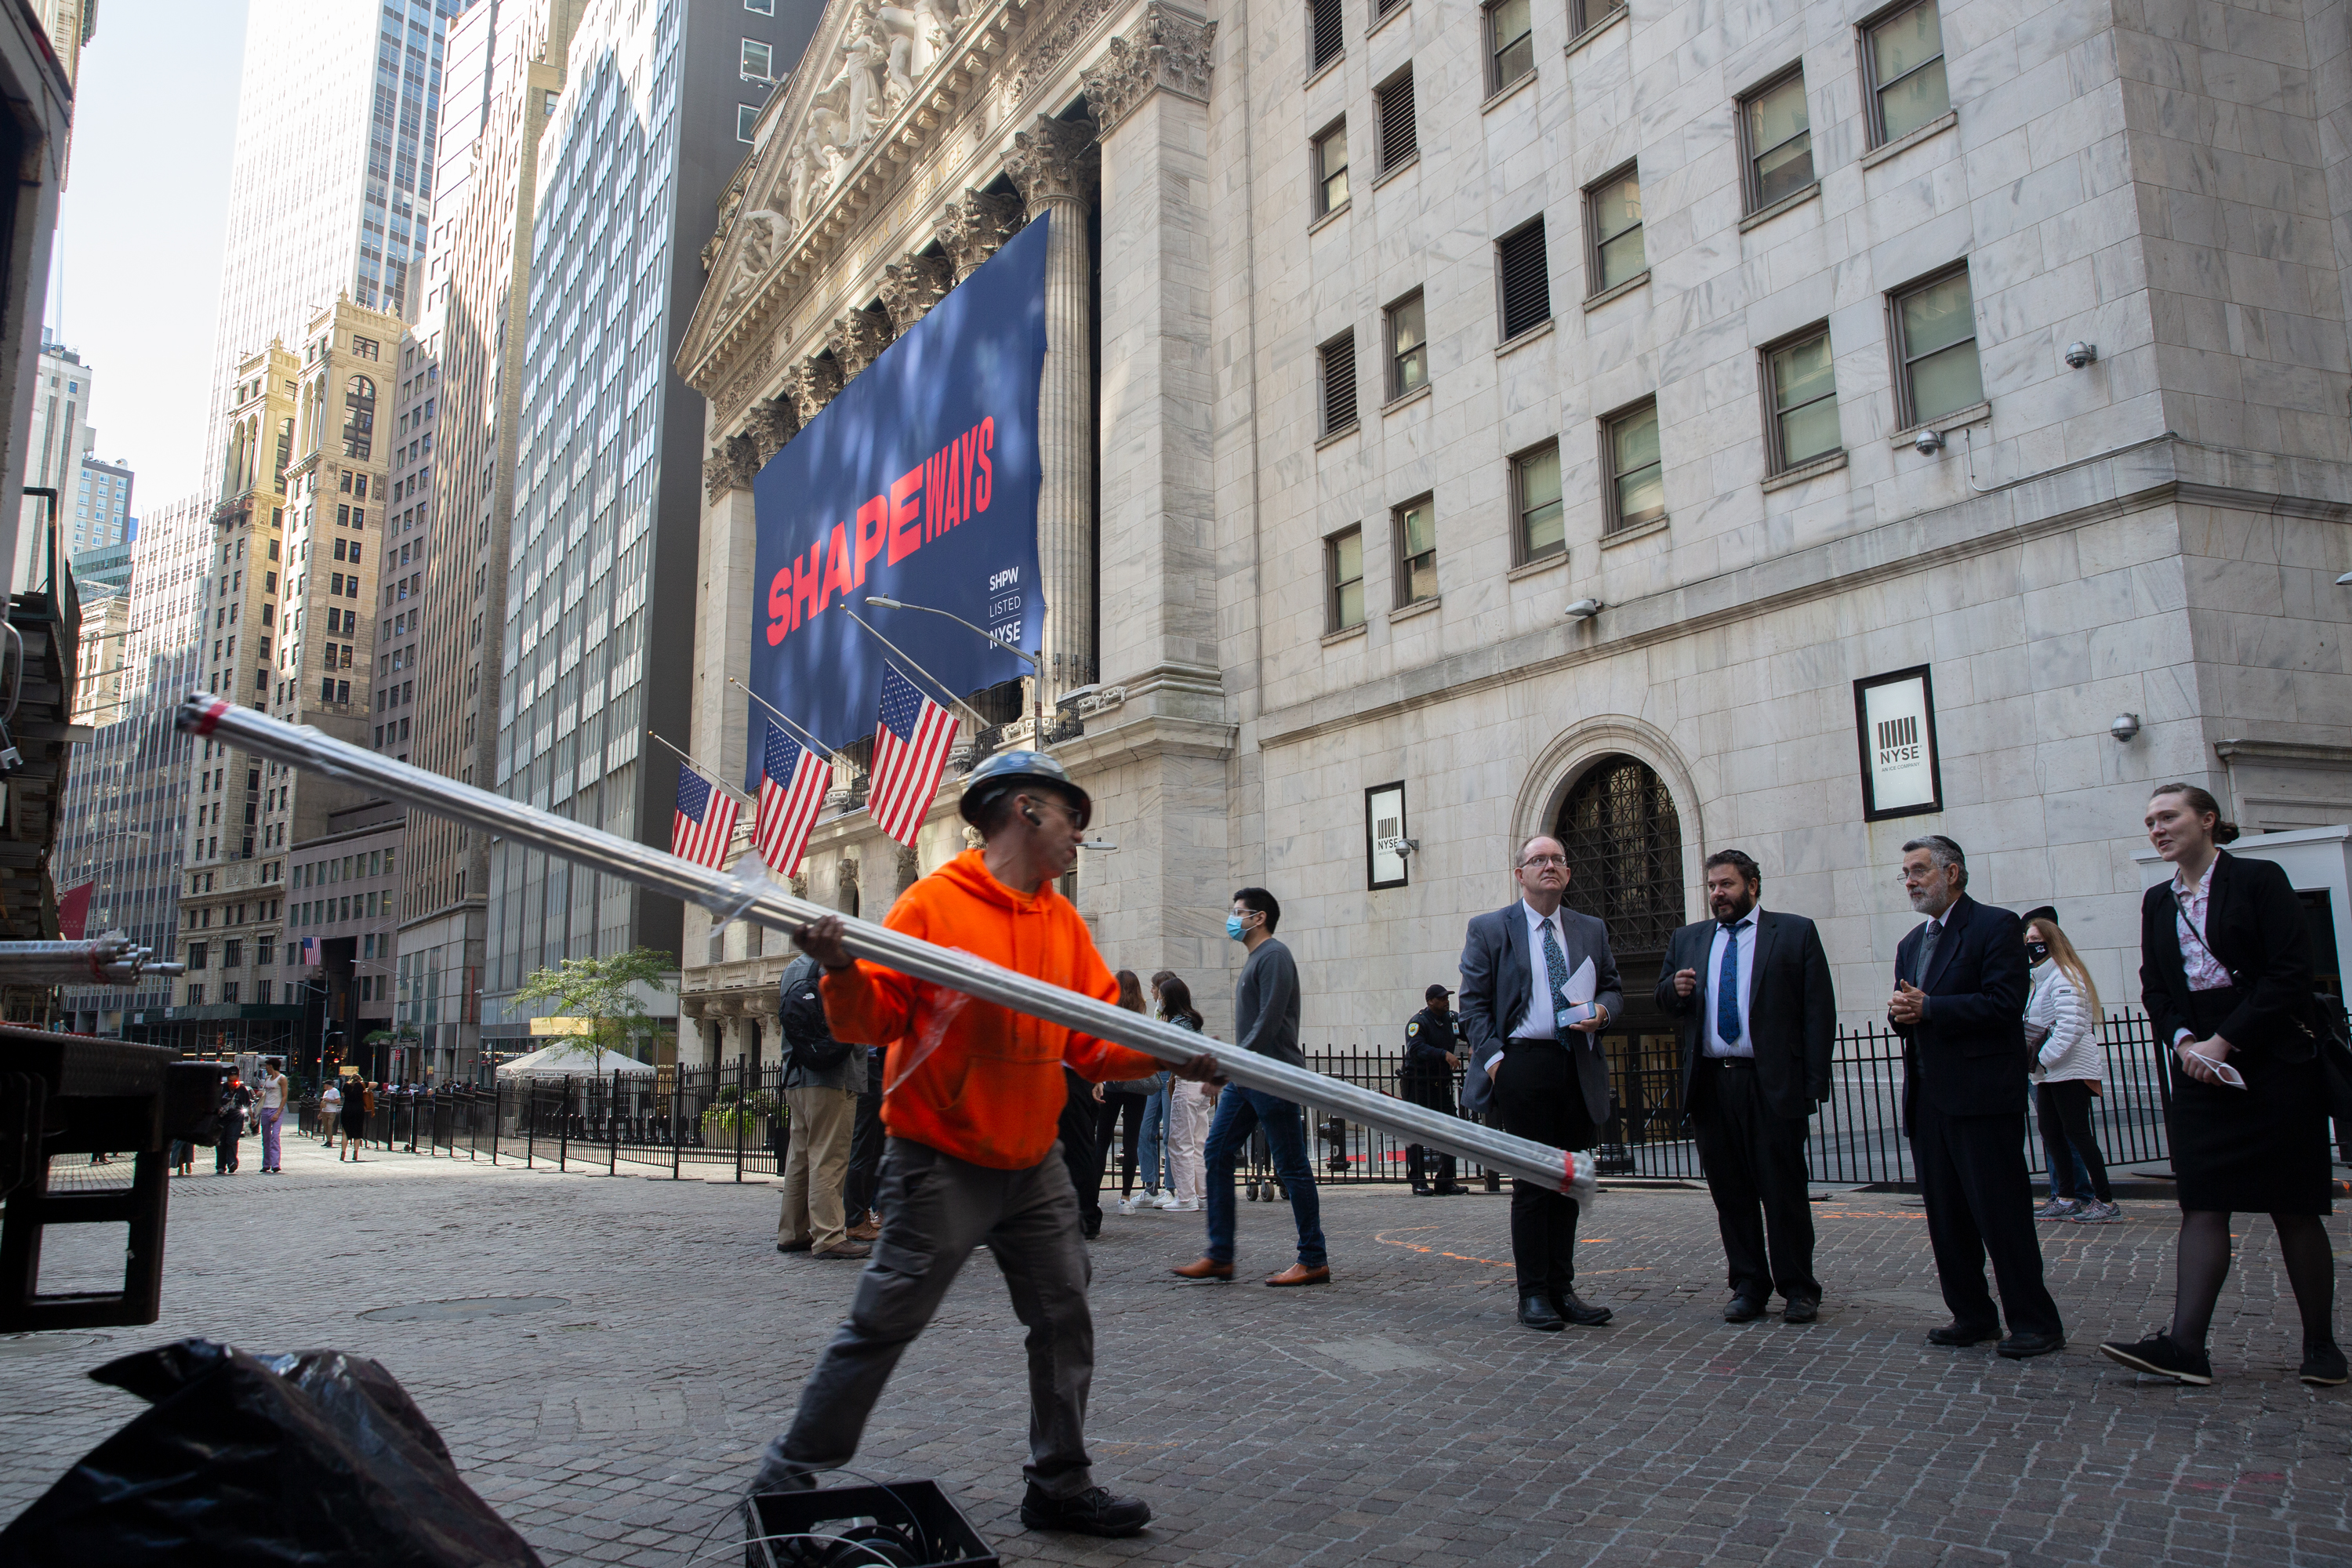 A construction worker transports scaffolding for a project on Wall Street, Oct. 20, 2021.